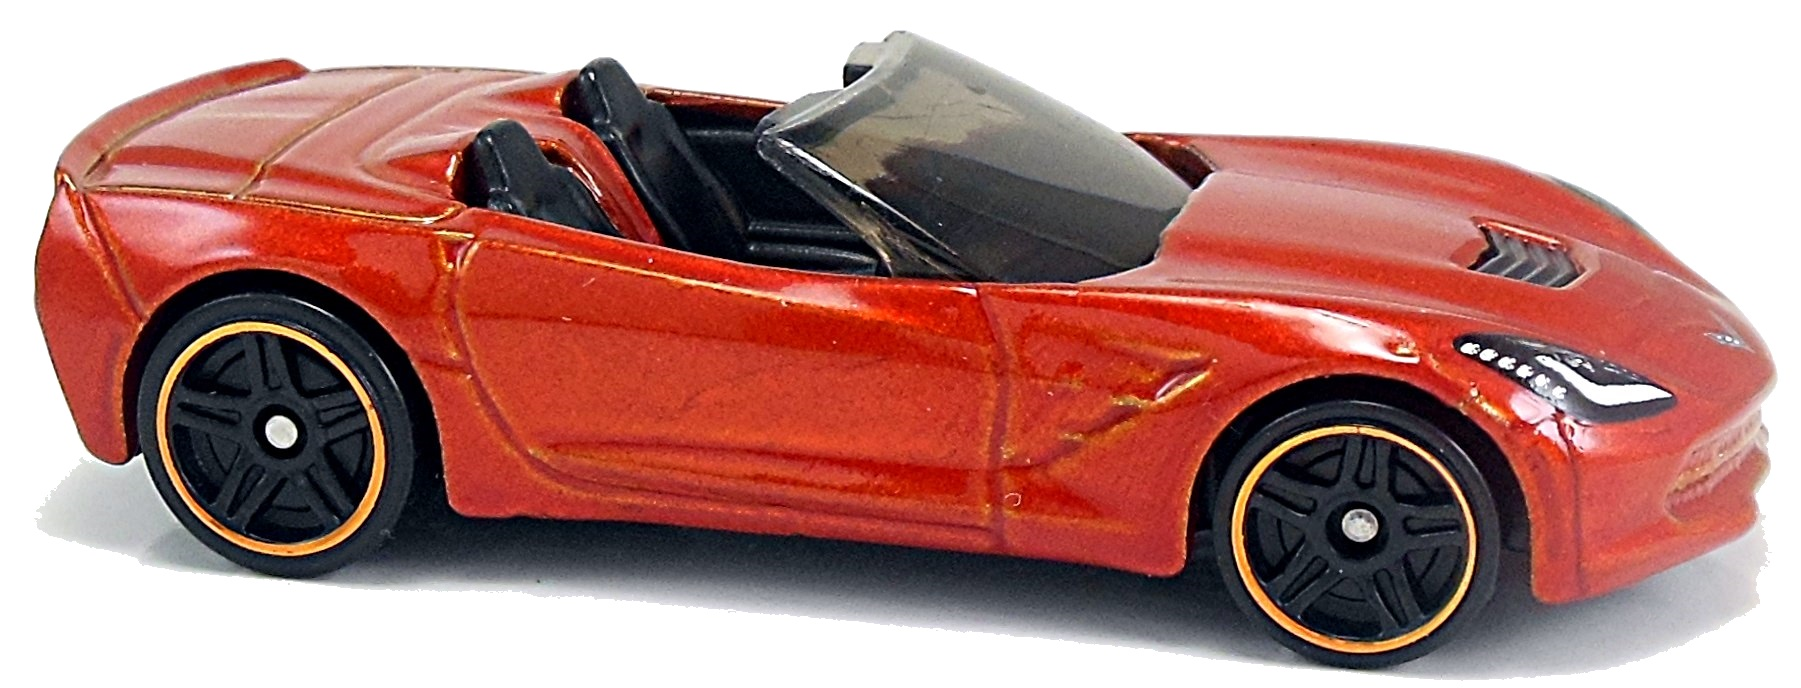 Details about  /Hot Wheels Mint Loose MYSTERY Series 2 /'14 Corvette Stingray